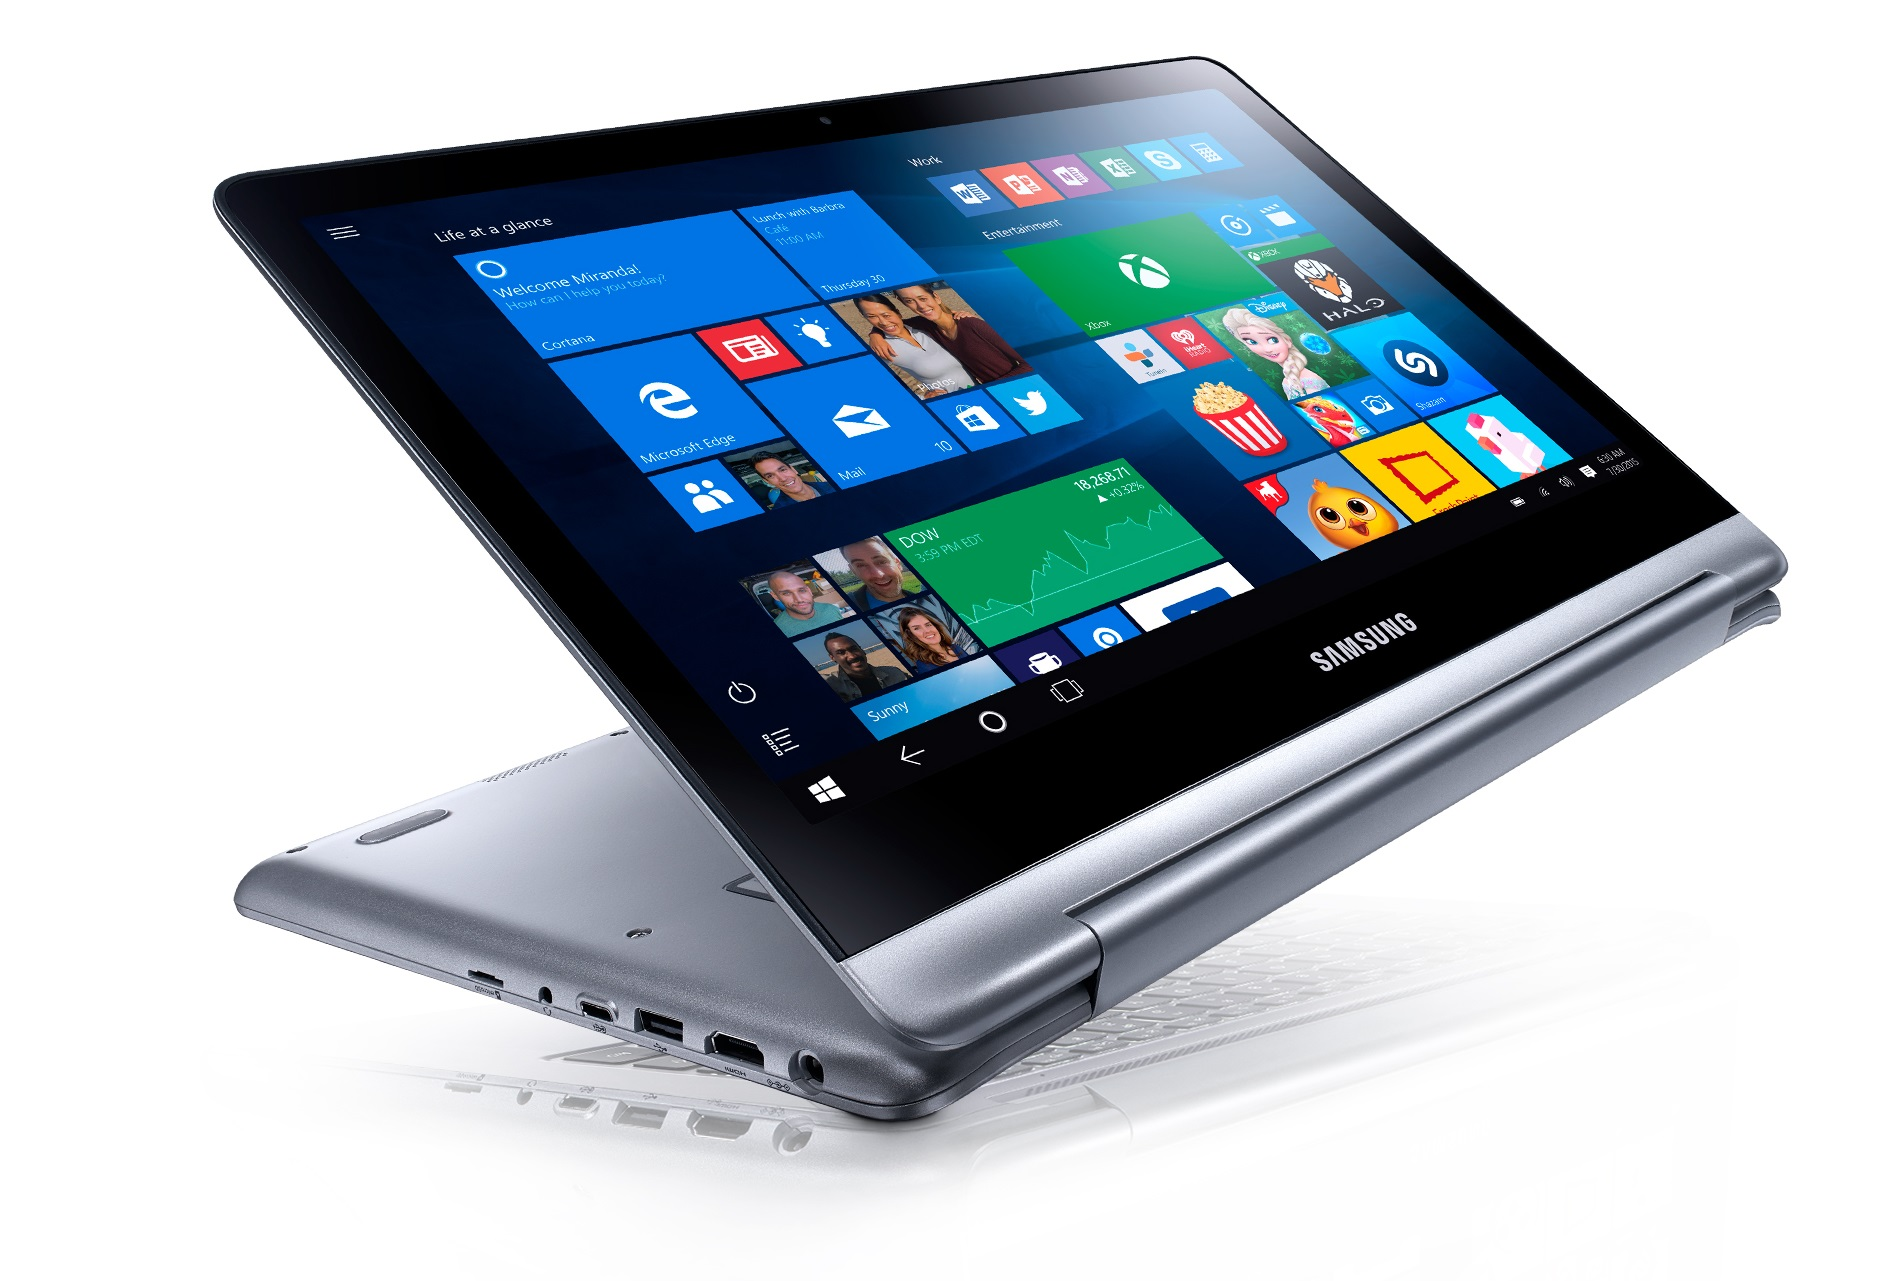 samsung-notebook-7-spin-convertible-laptop